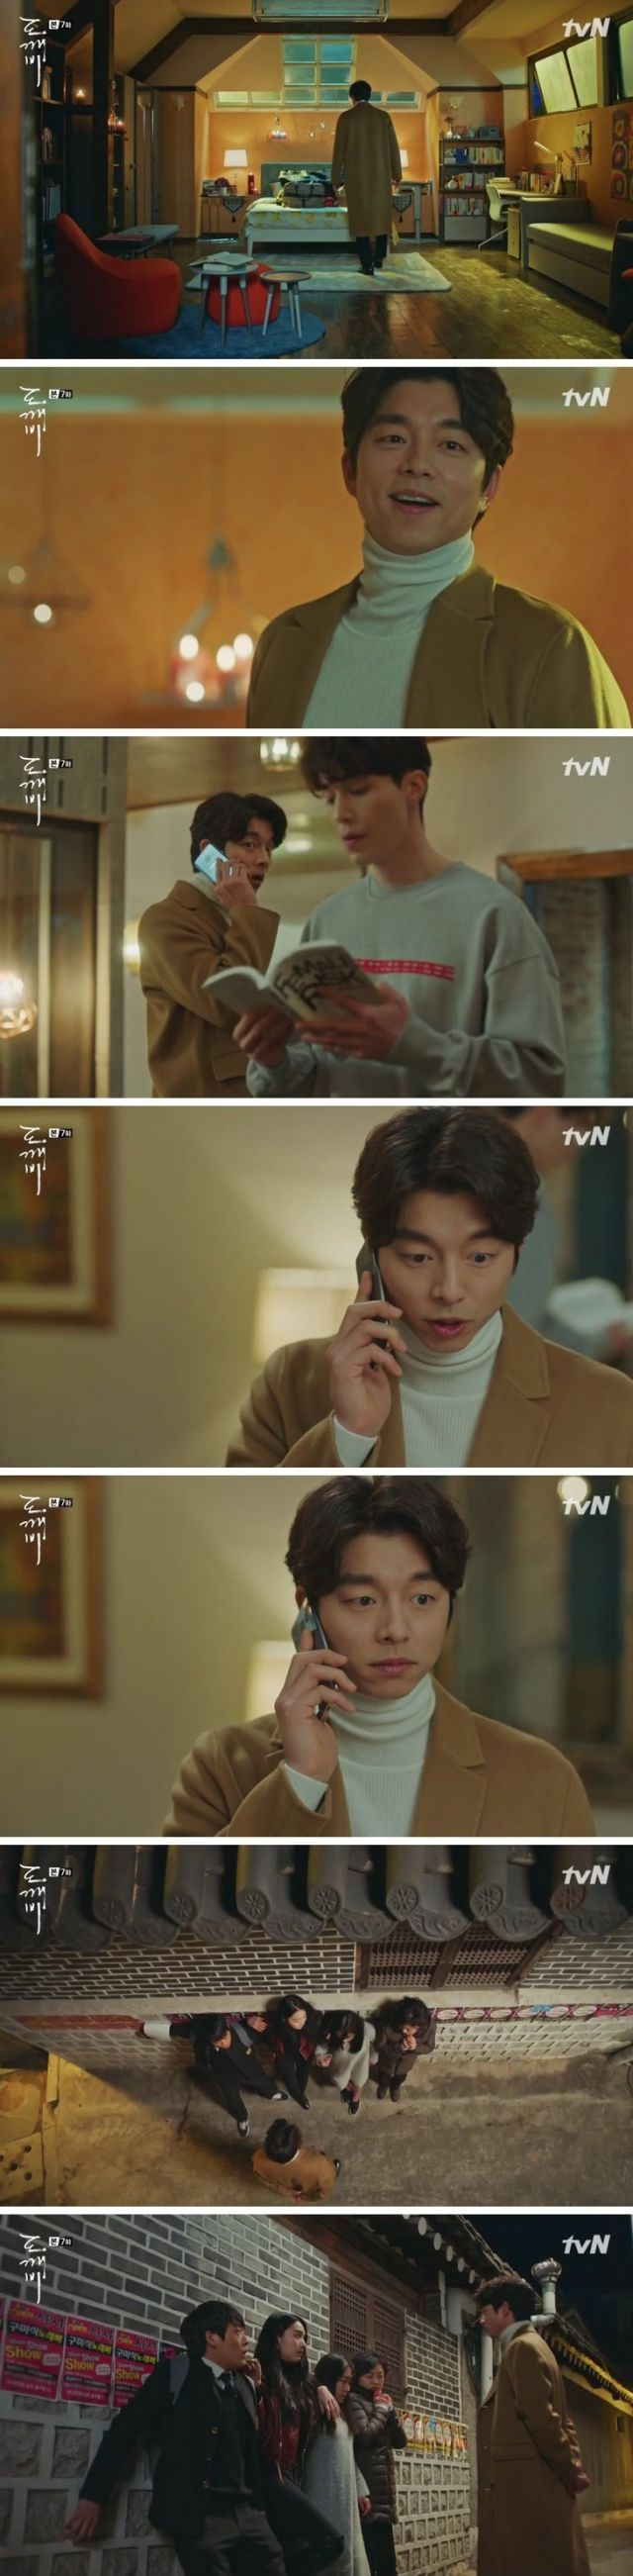 [Spoiler] Added episodes 7 and 8 captures for the #kdrama 'Goblin'